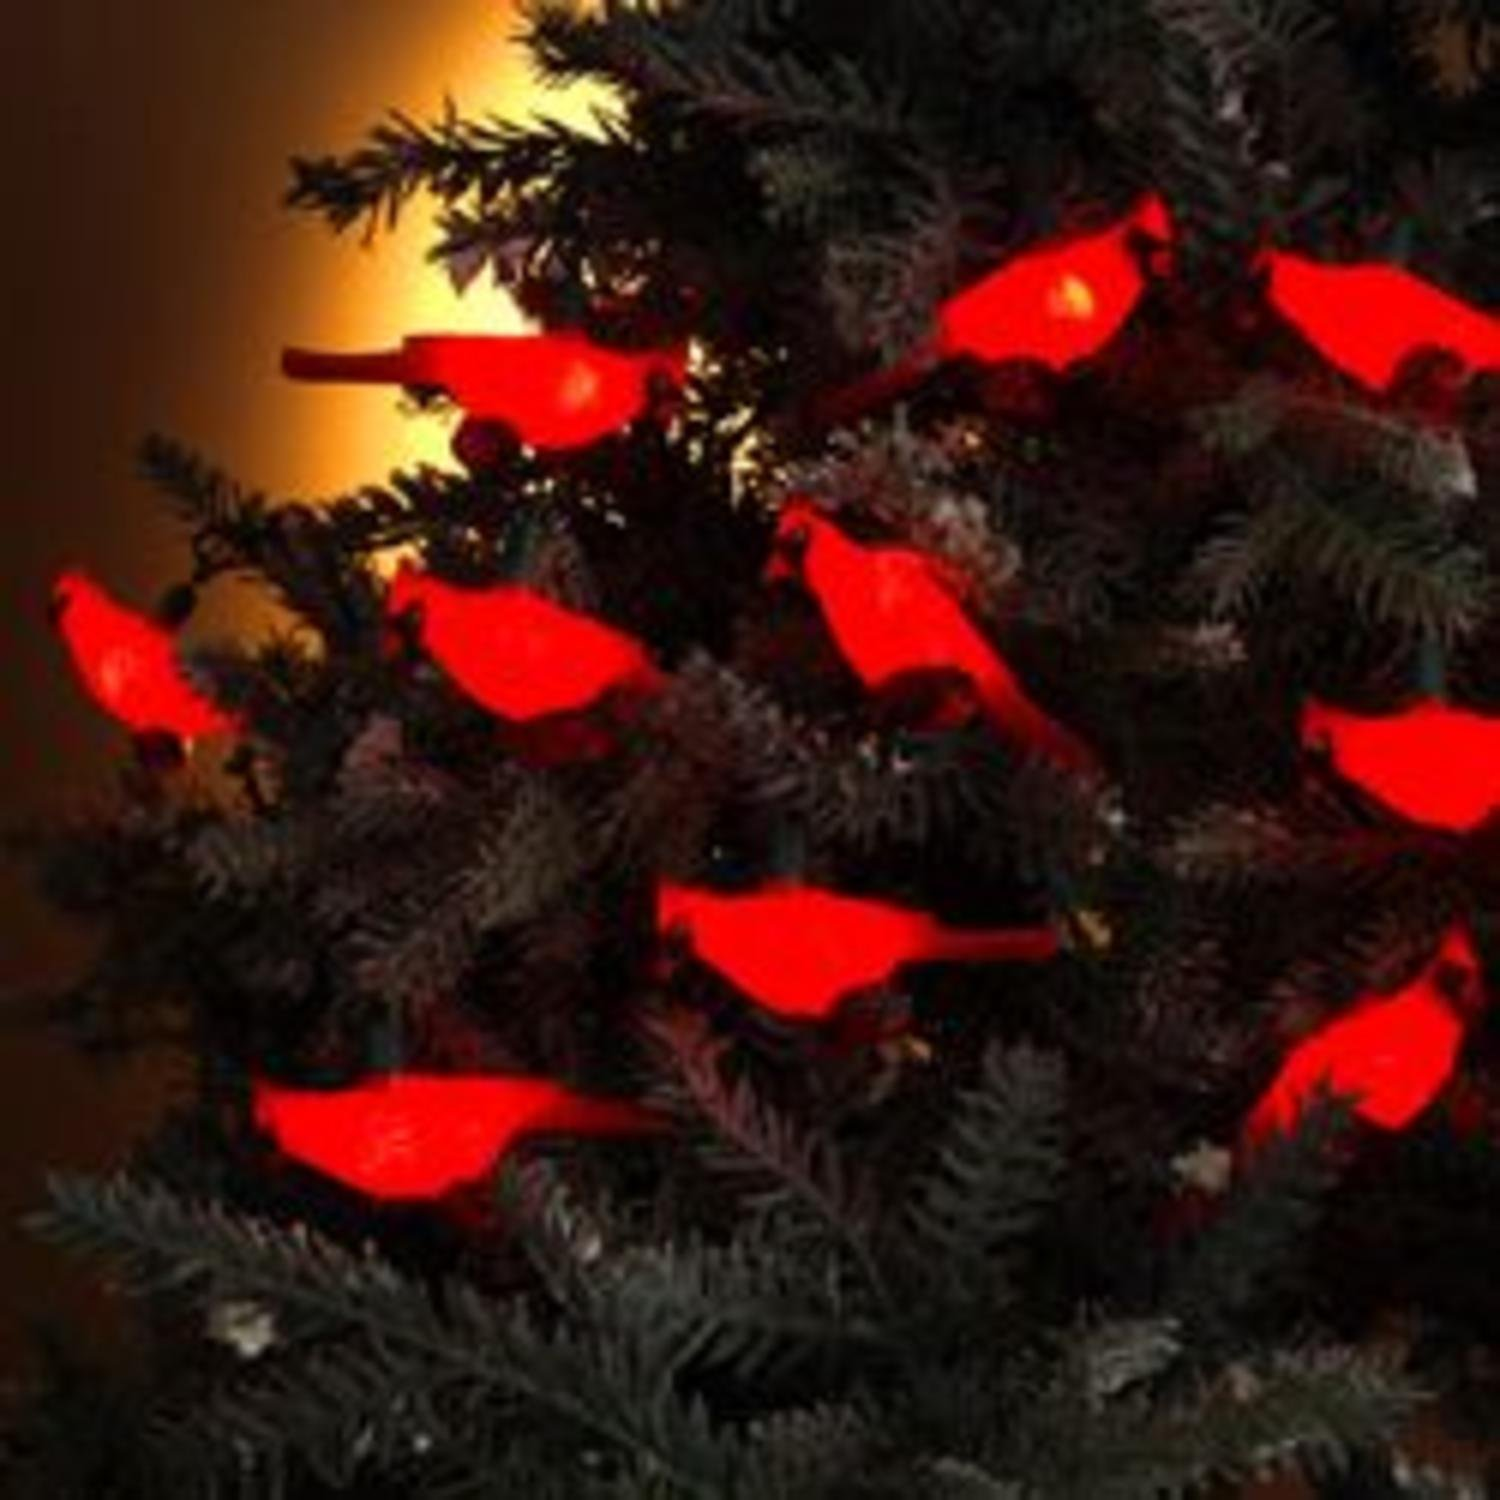 Set of 10 Festive Red Cardinal Bird Novelty Christmas Lights - Green ...